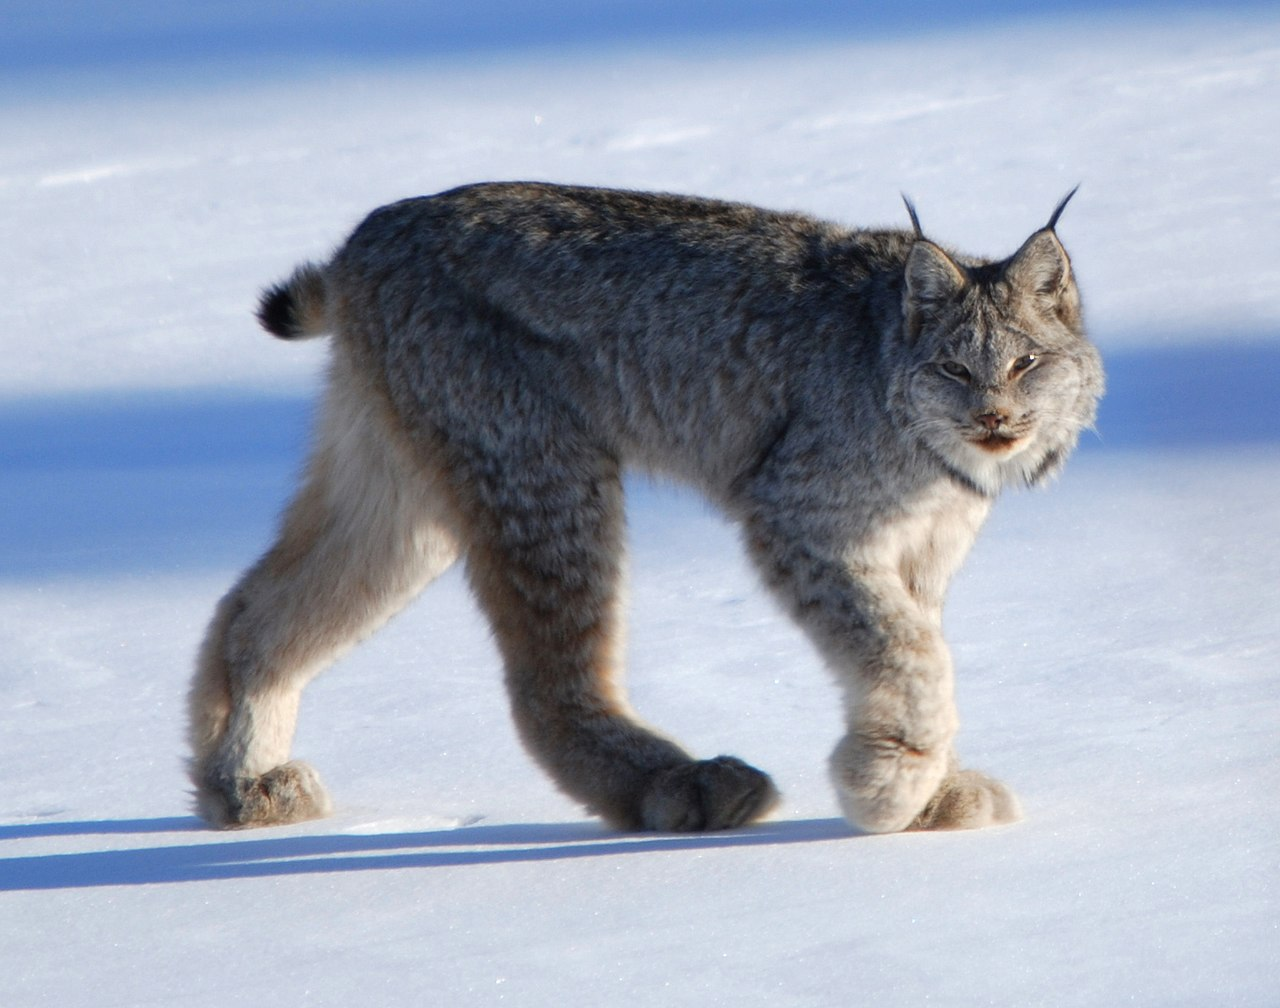 Taiga Animals : Canadian Lynx